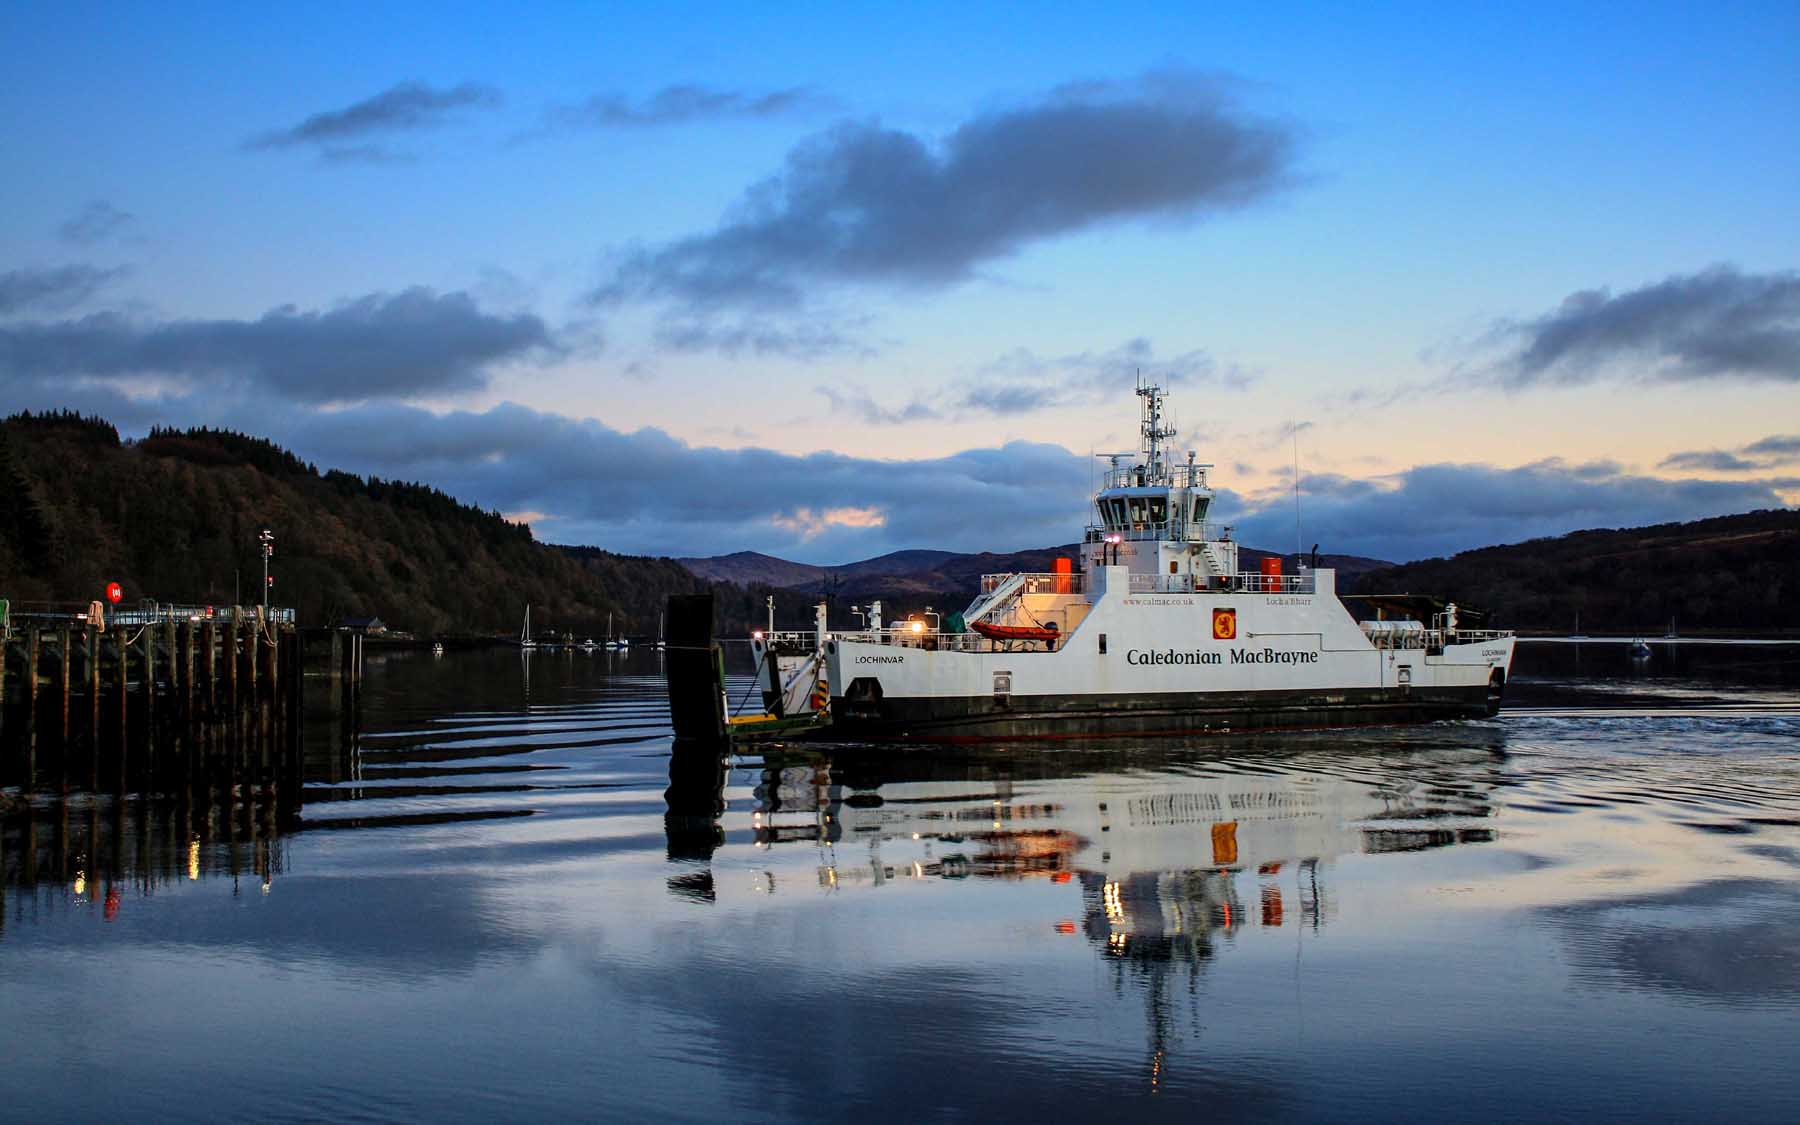 Lochinvar arriving at Lochaline (Photo: SoC Crew)